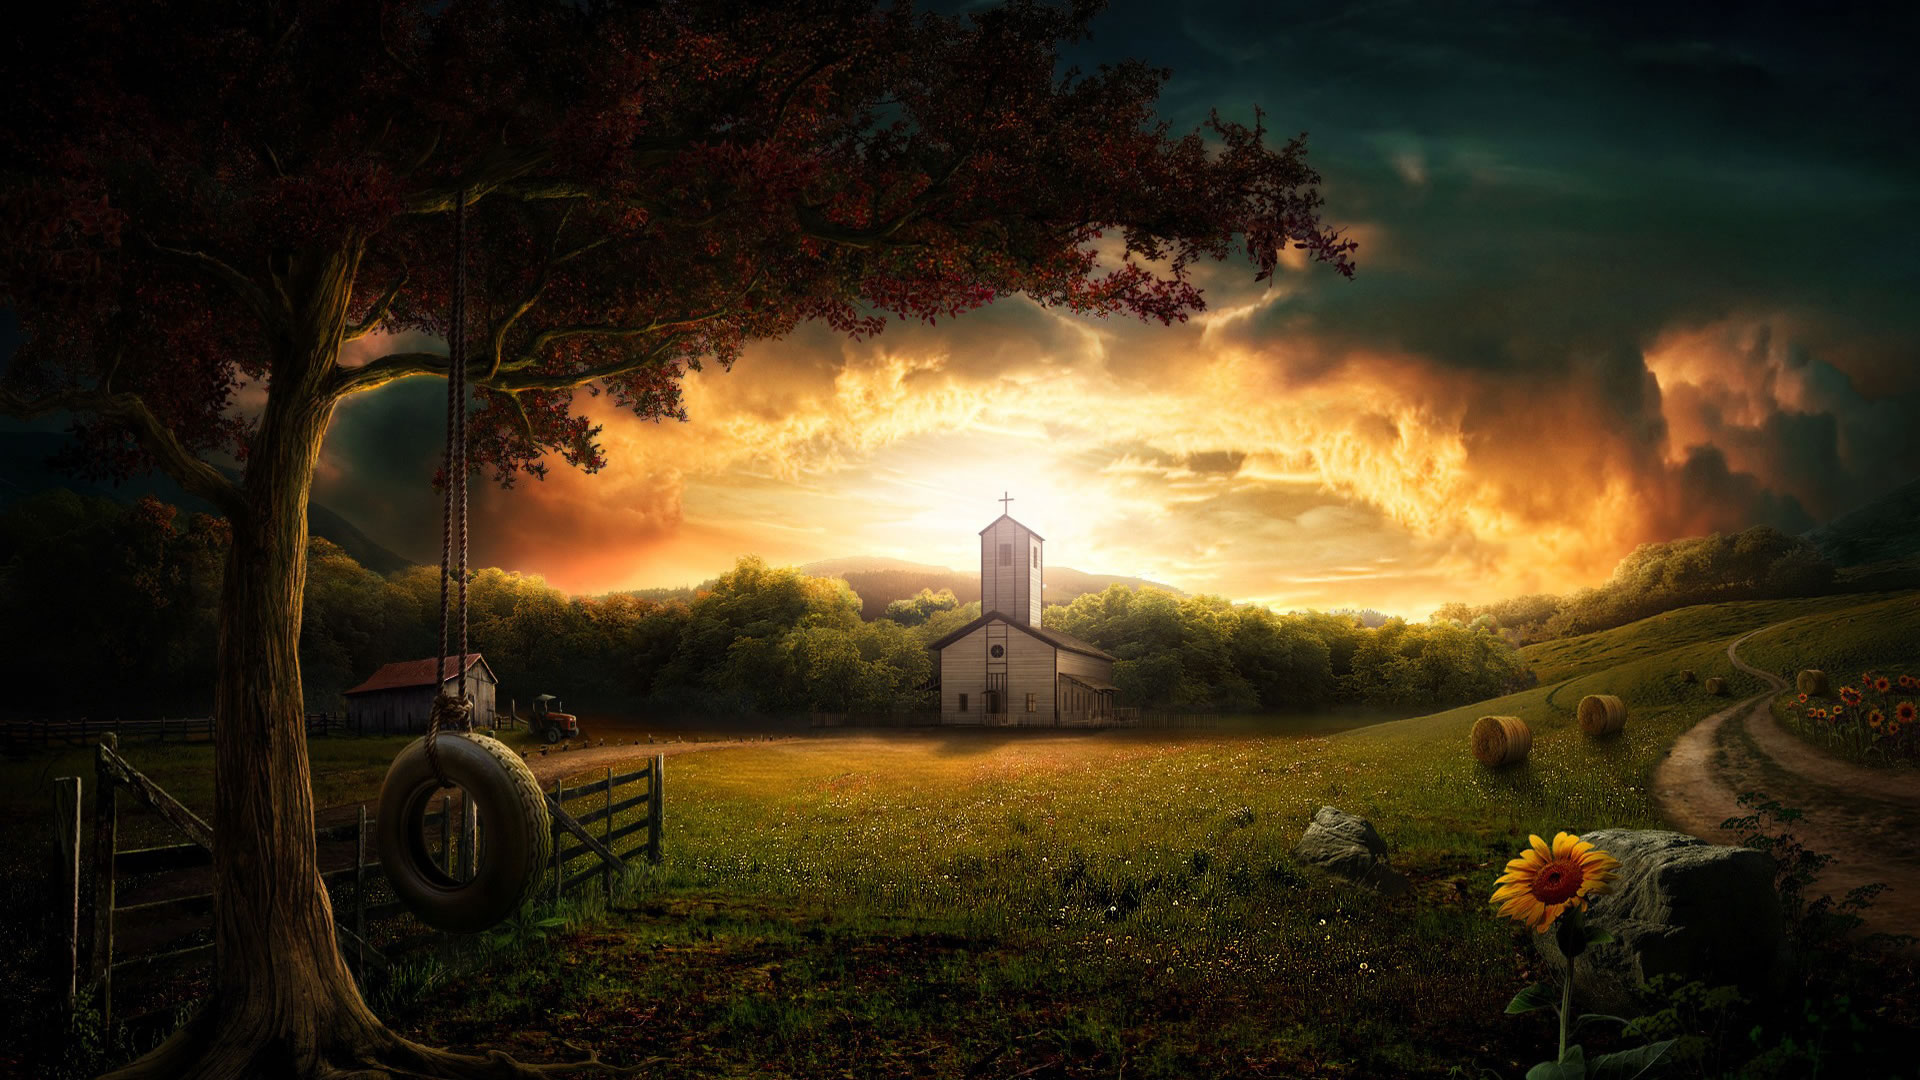 download fantasy wallpaper download which is under the fantasy 1920x1080